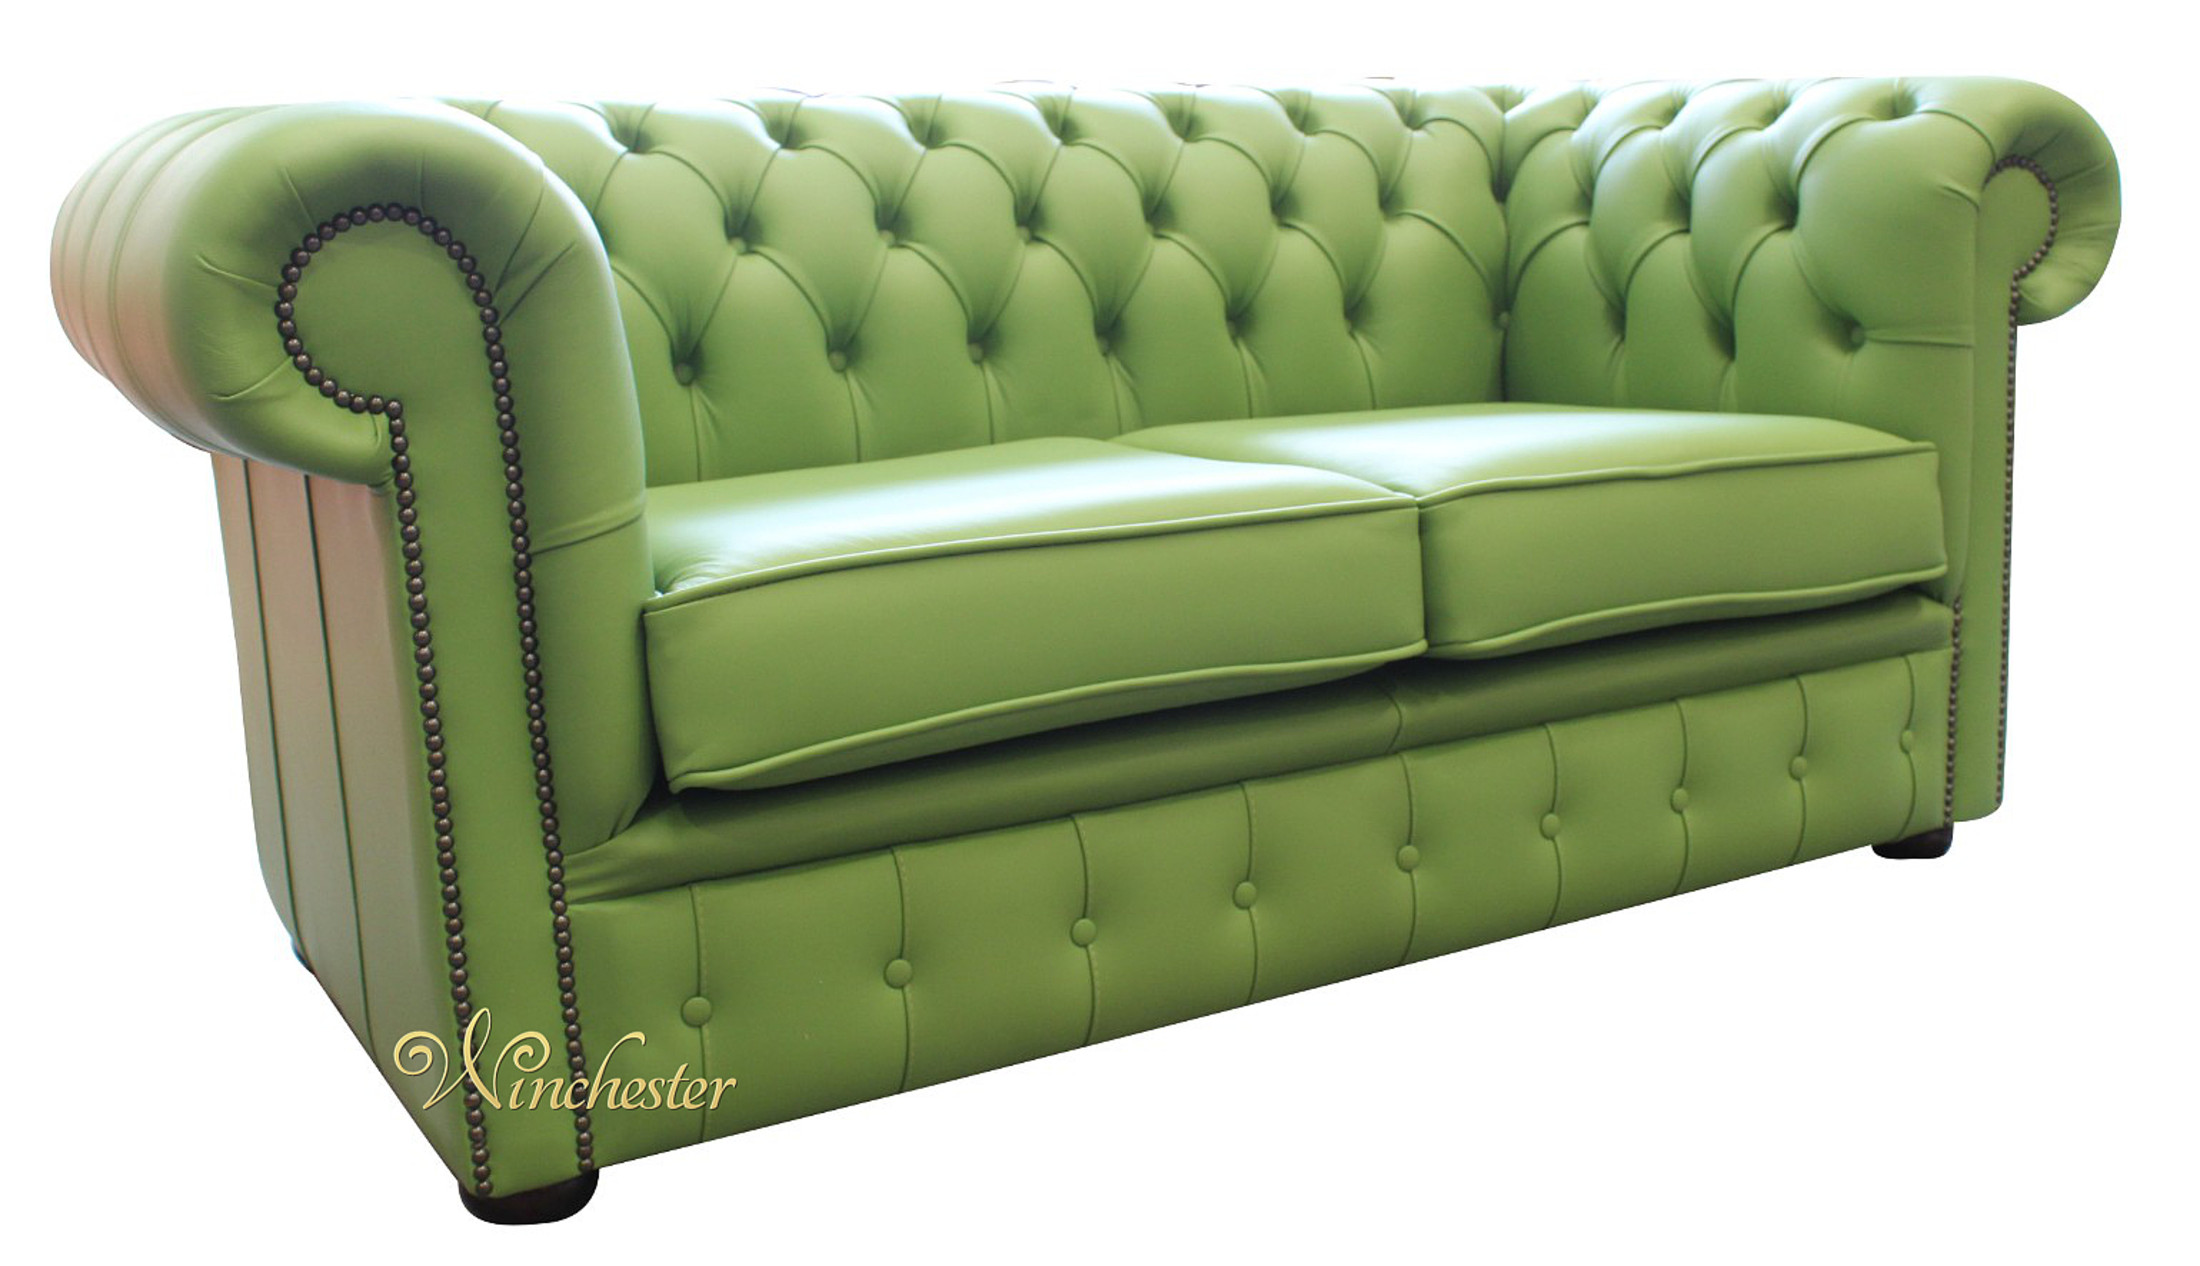 ... Chesterfield Apple Green Leather Sofa Wc